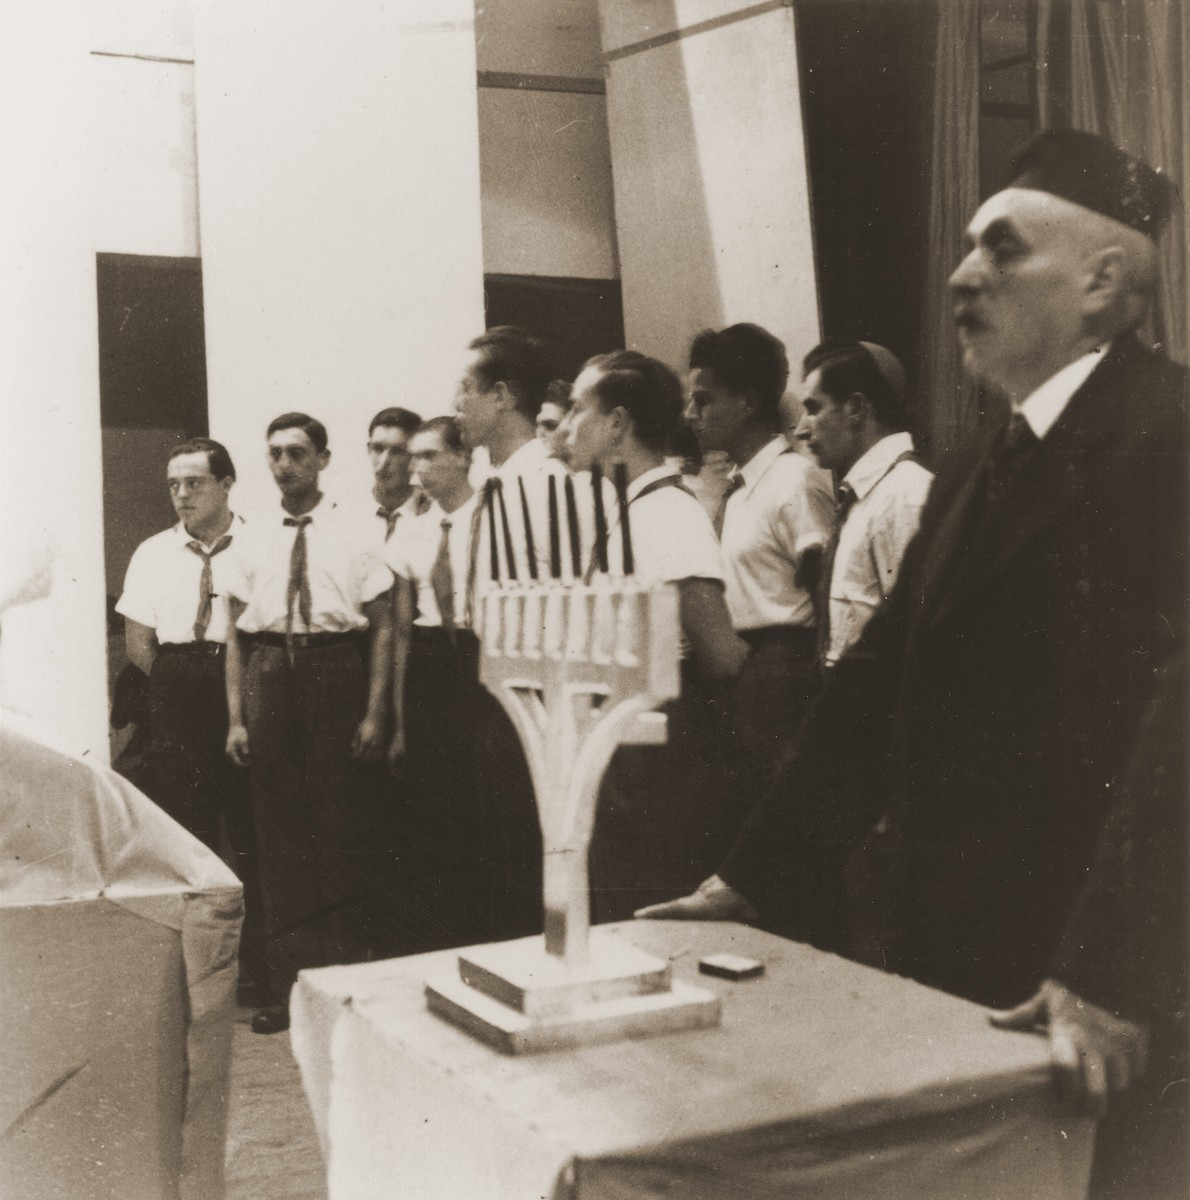 Members of the Kladovo transport lead a Hanukkah candlelighting ceremony at the Sabac refugee camp.